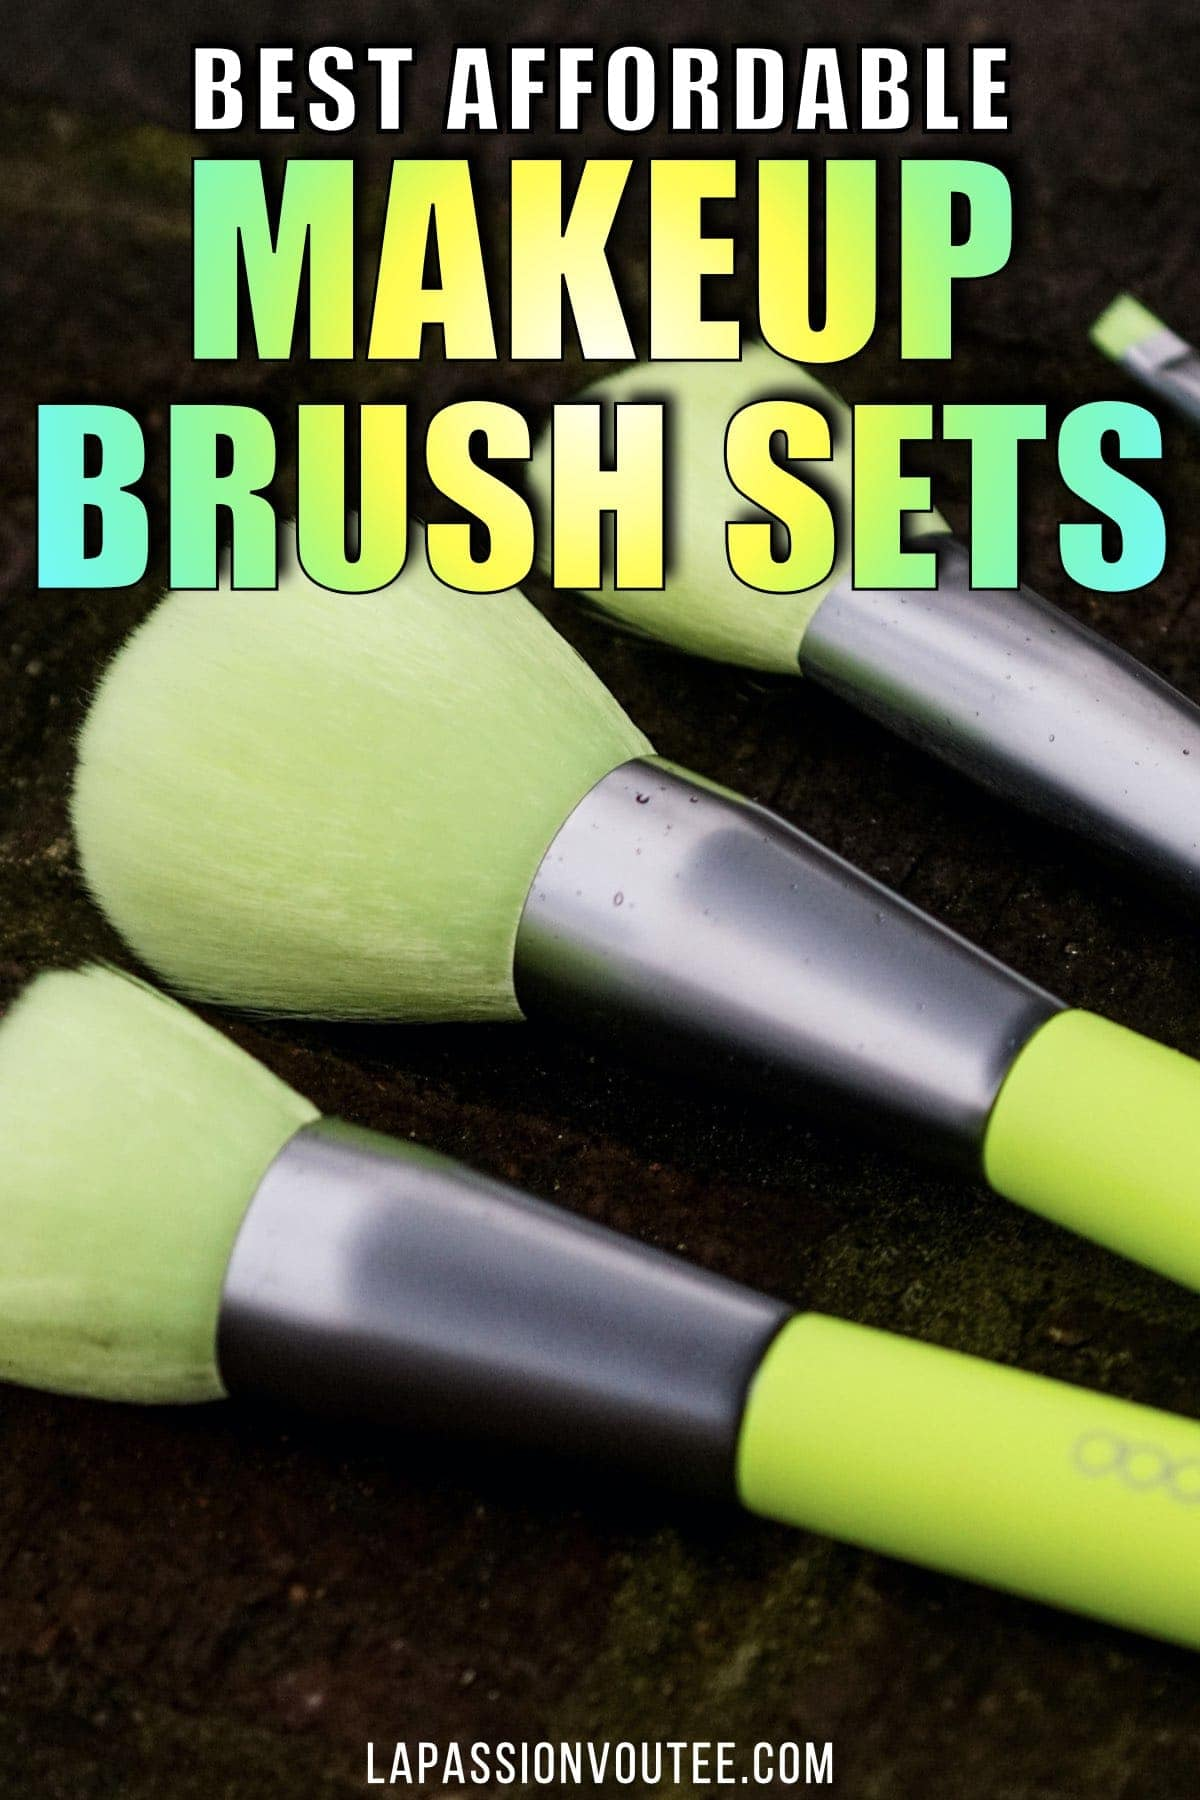 The makeup brushes you use for your foundation and powder application affect the final result of your look. Finding the best makeup should not be so difficult. These are the best makeup brush sets on Amazon guaranteed to give you a flawless look for less.